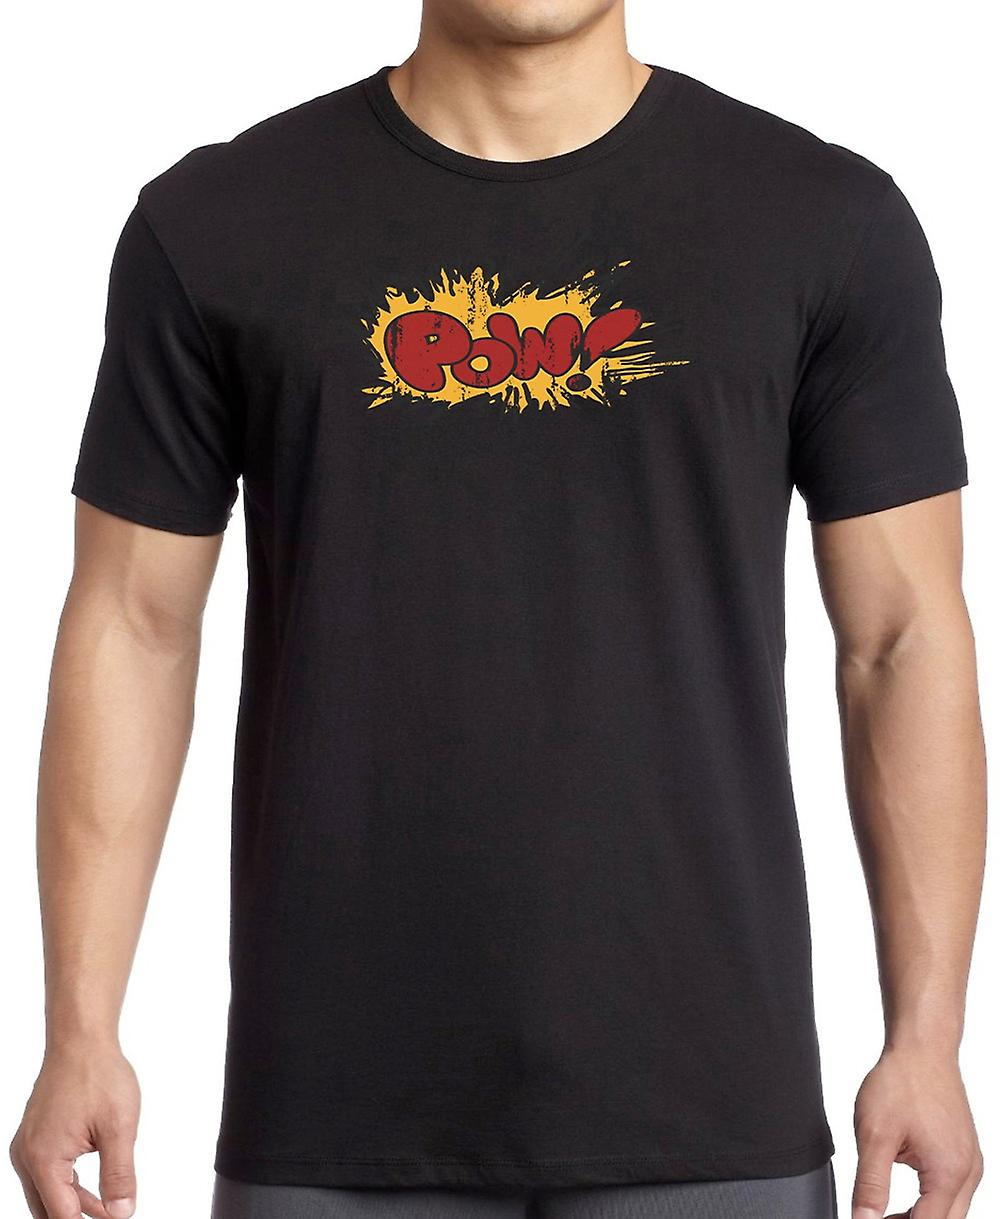 POW - Cartoon Explosion - Funny T Shirt